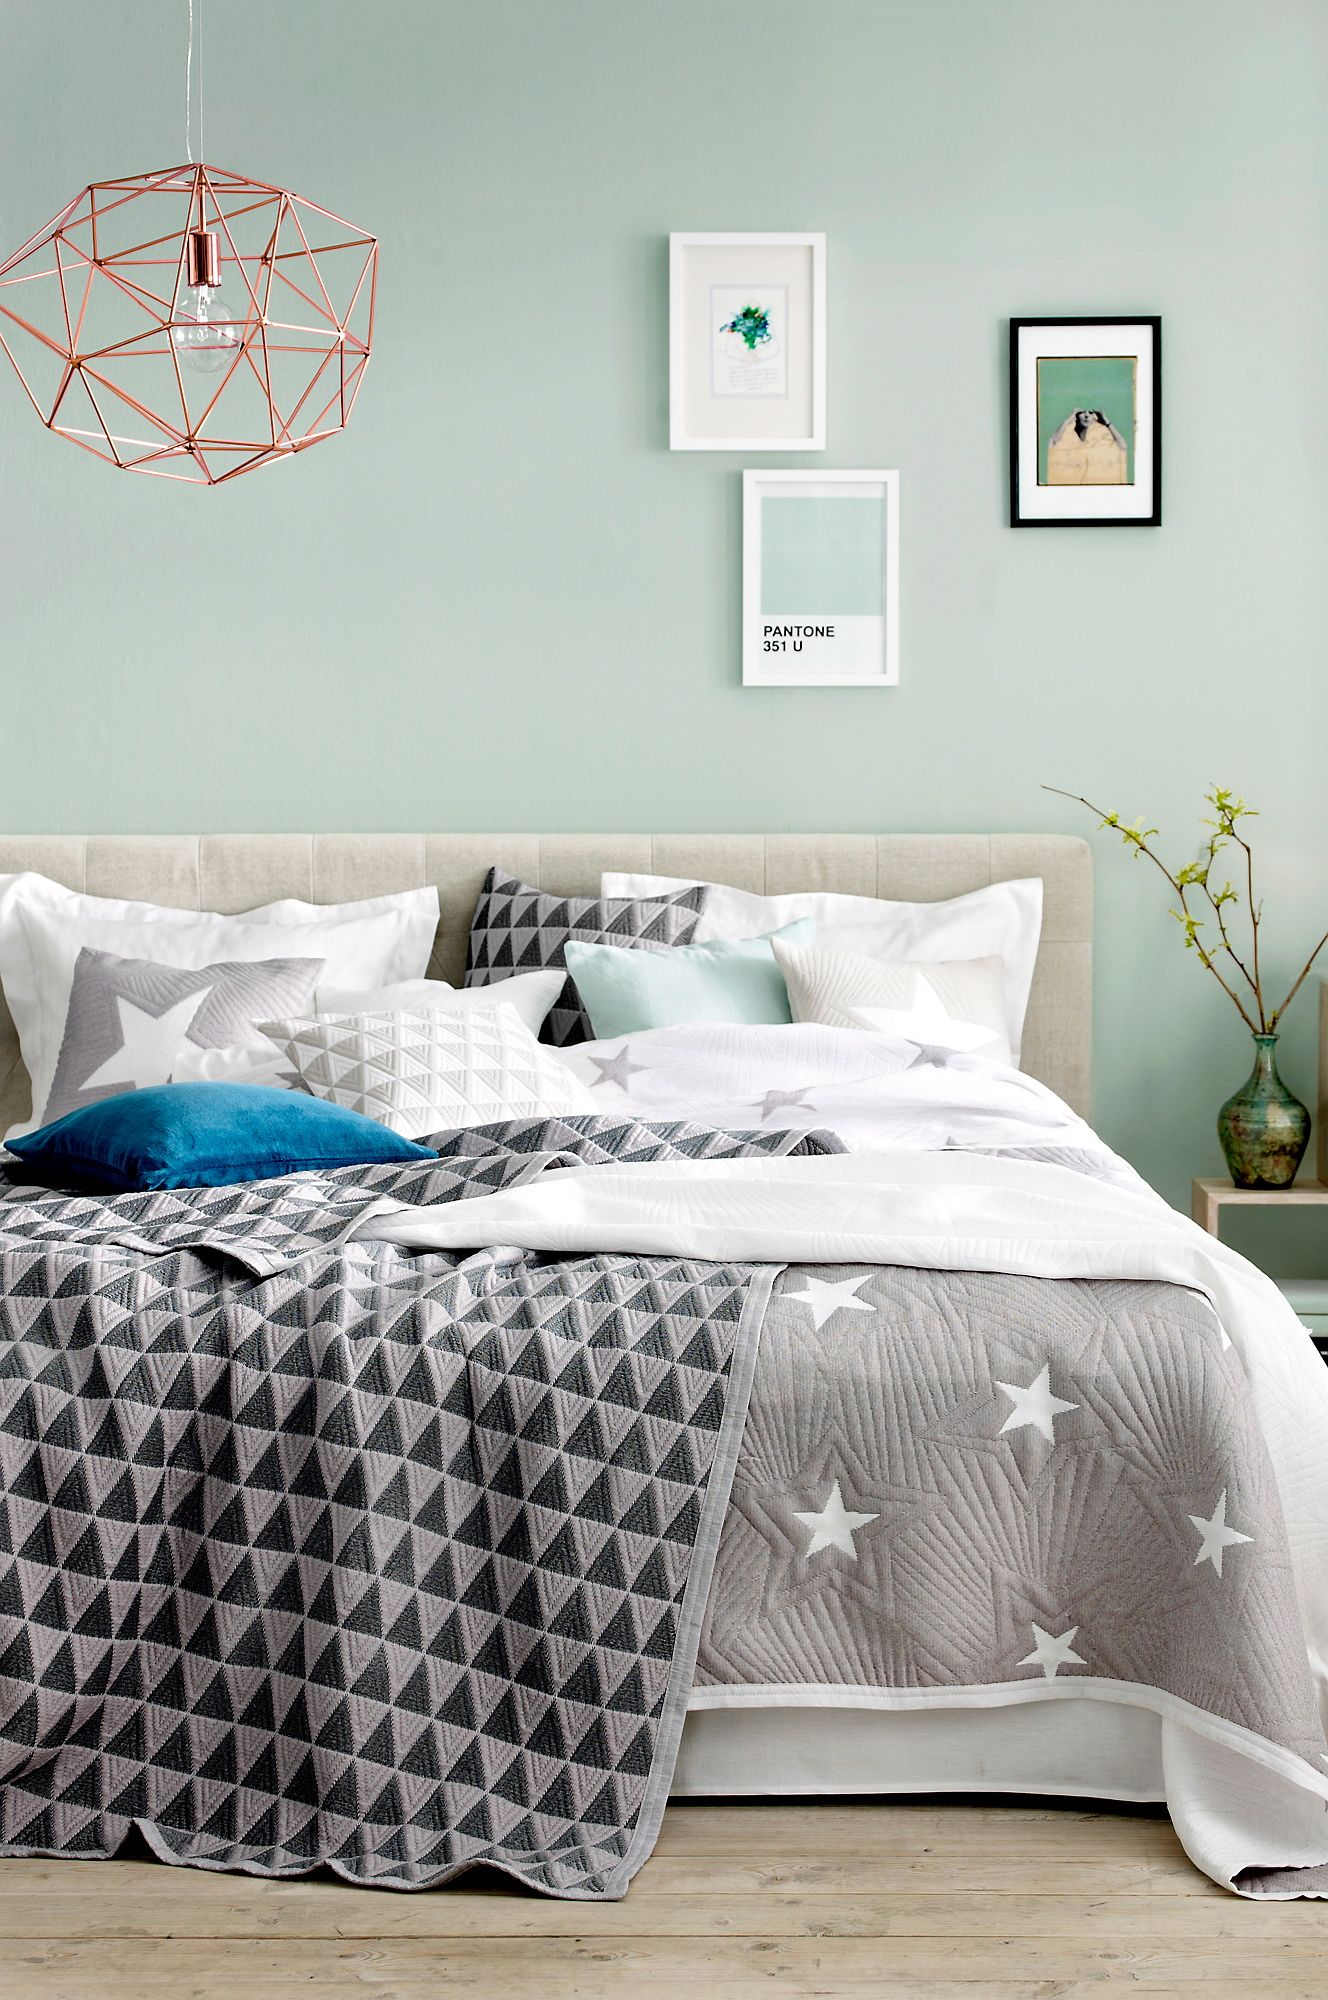 mint, watery blue/green walls, grey accents, comfy bed,i like the